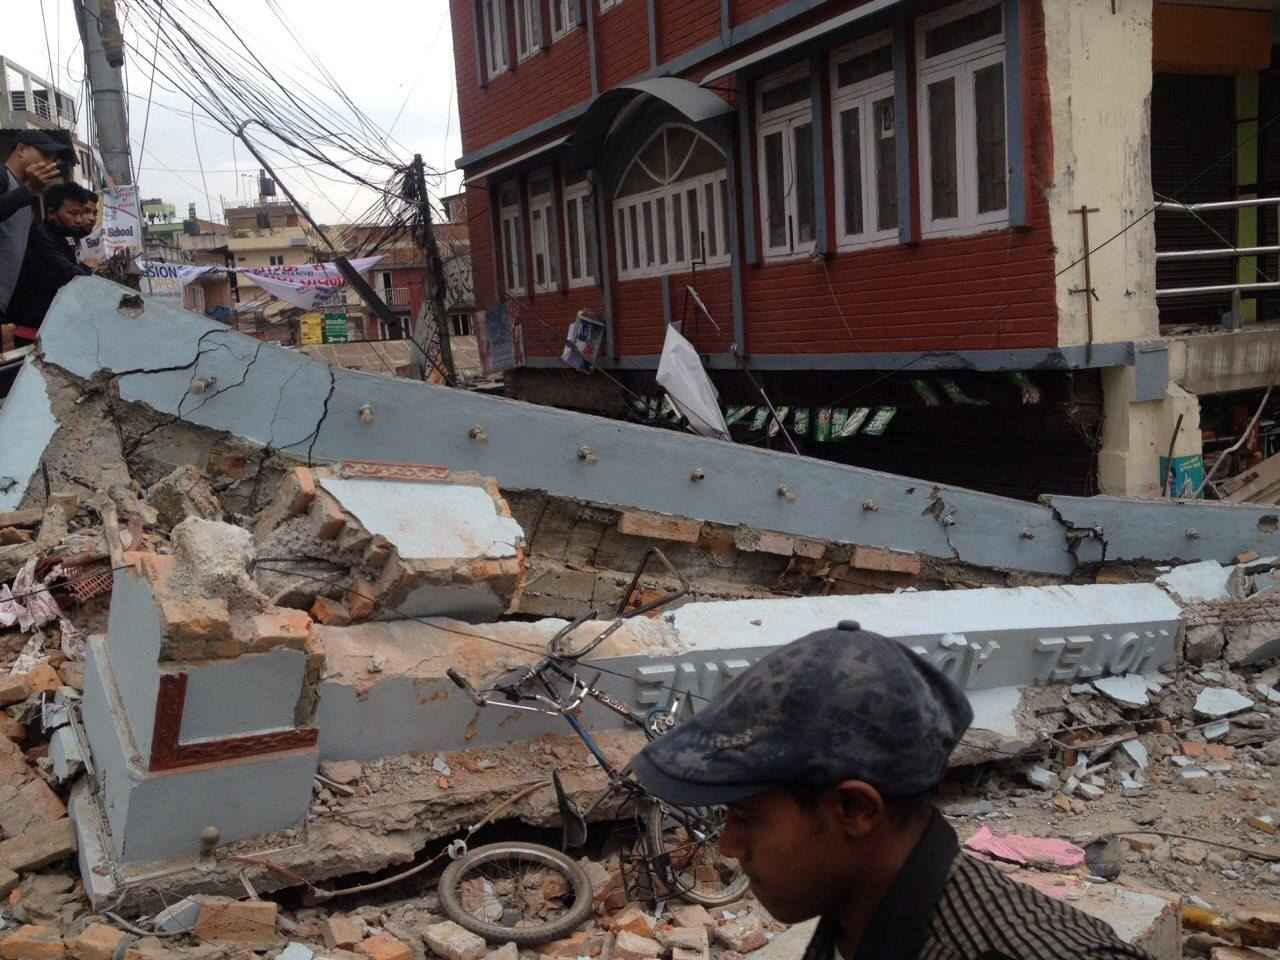 012 Essay On Earthquake Example Nepal 2015 01 Impressive Occurred In India During 2011-12 English Hindi Full